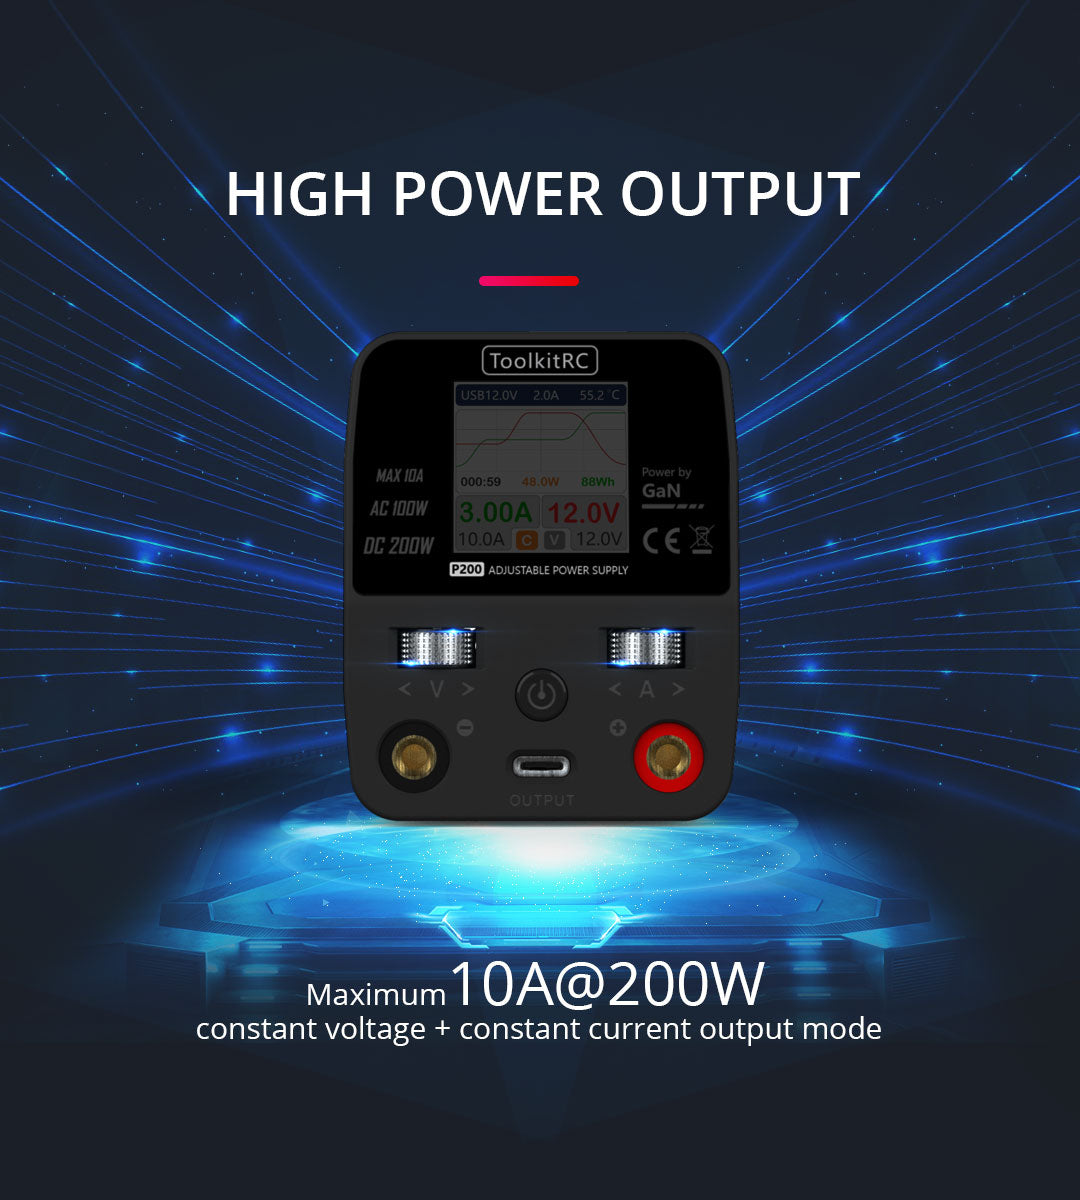 ToolkitRC P200 Power Supply